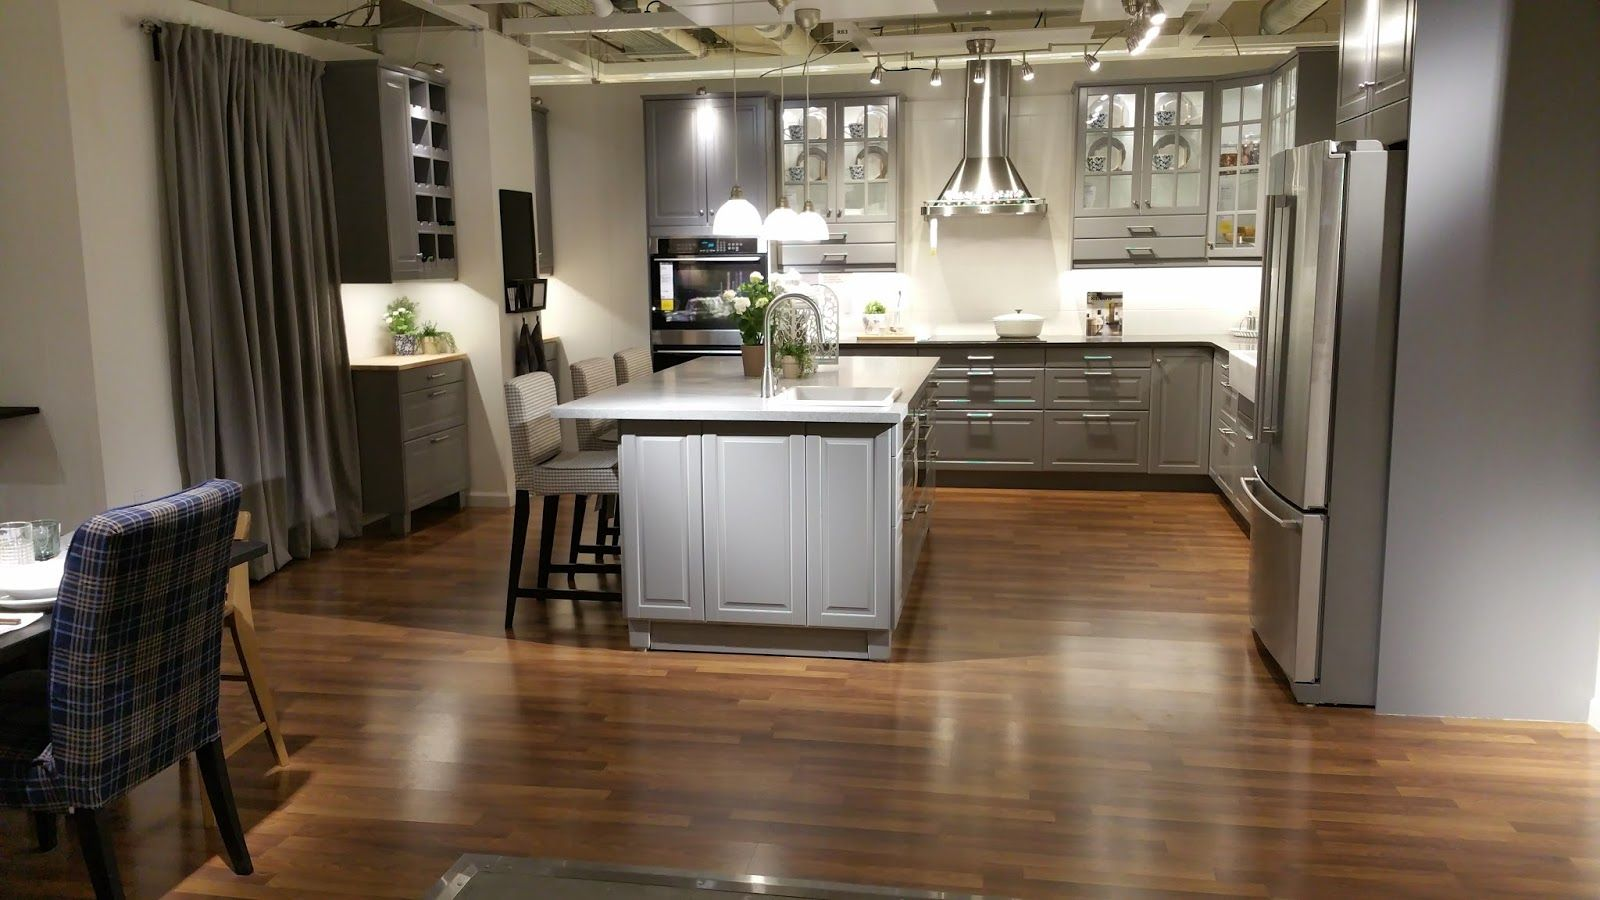 Best Bodbyn Grey Kitchen Google Search Ikea Bodbyn Grey 640 x 480